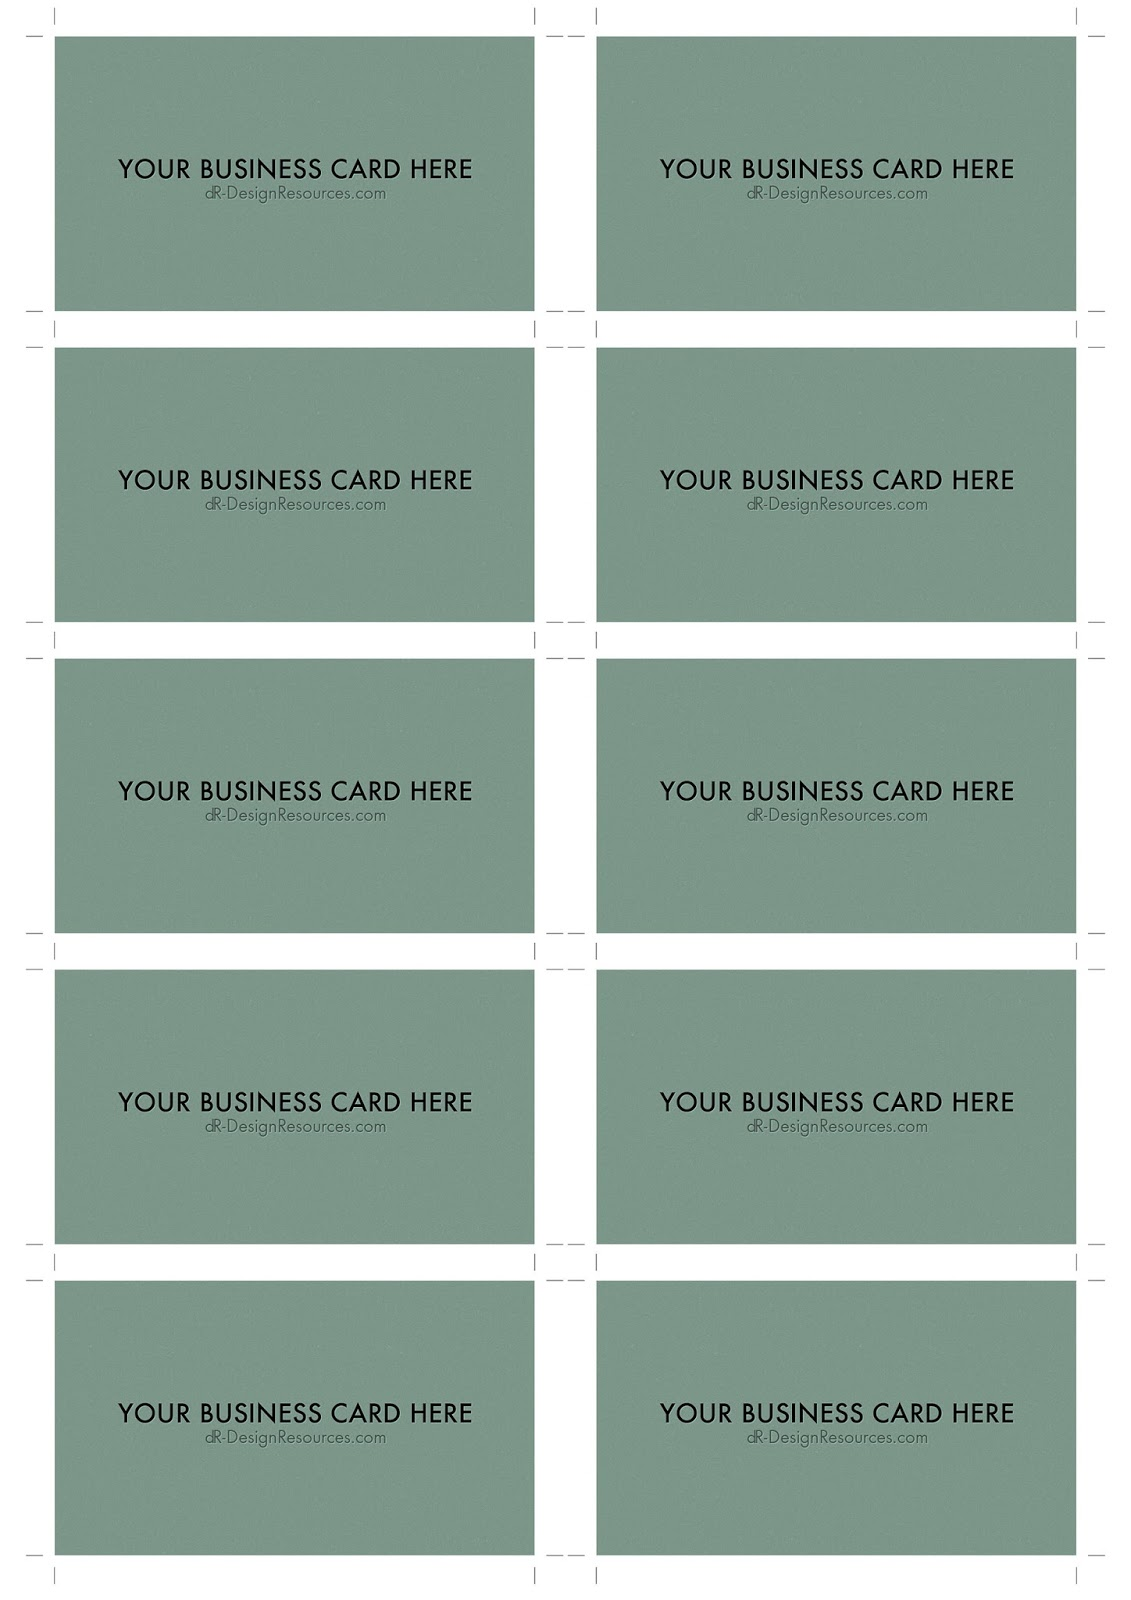 10 business card template business card design for Template of business card